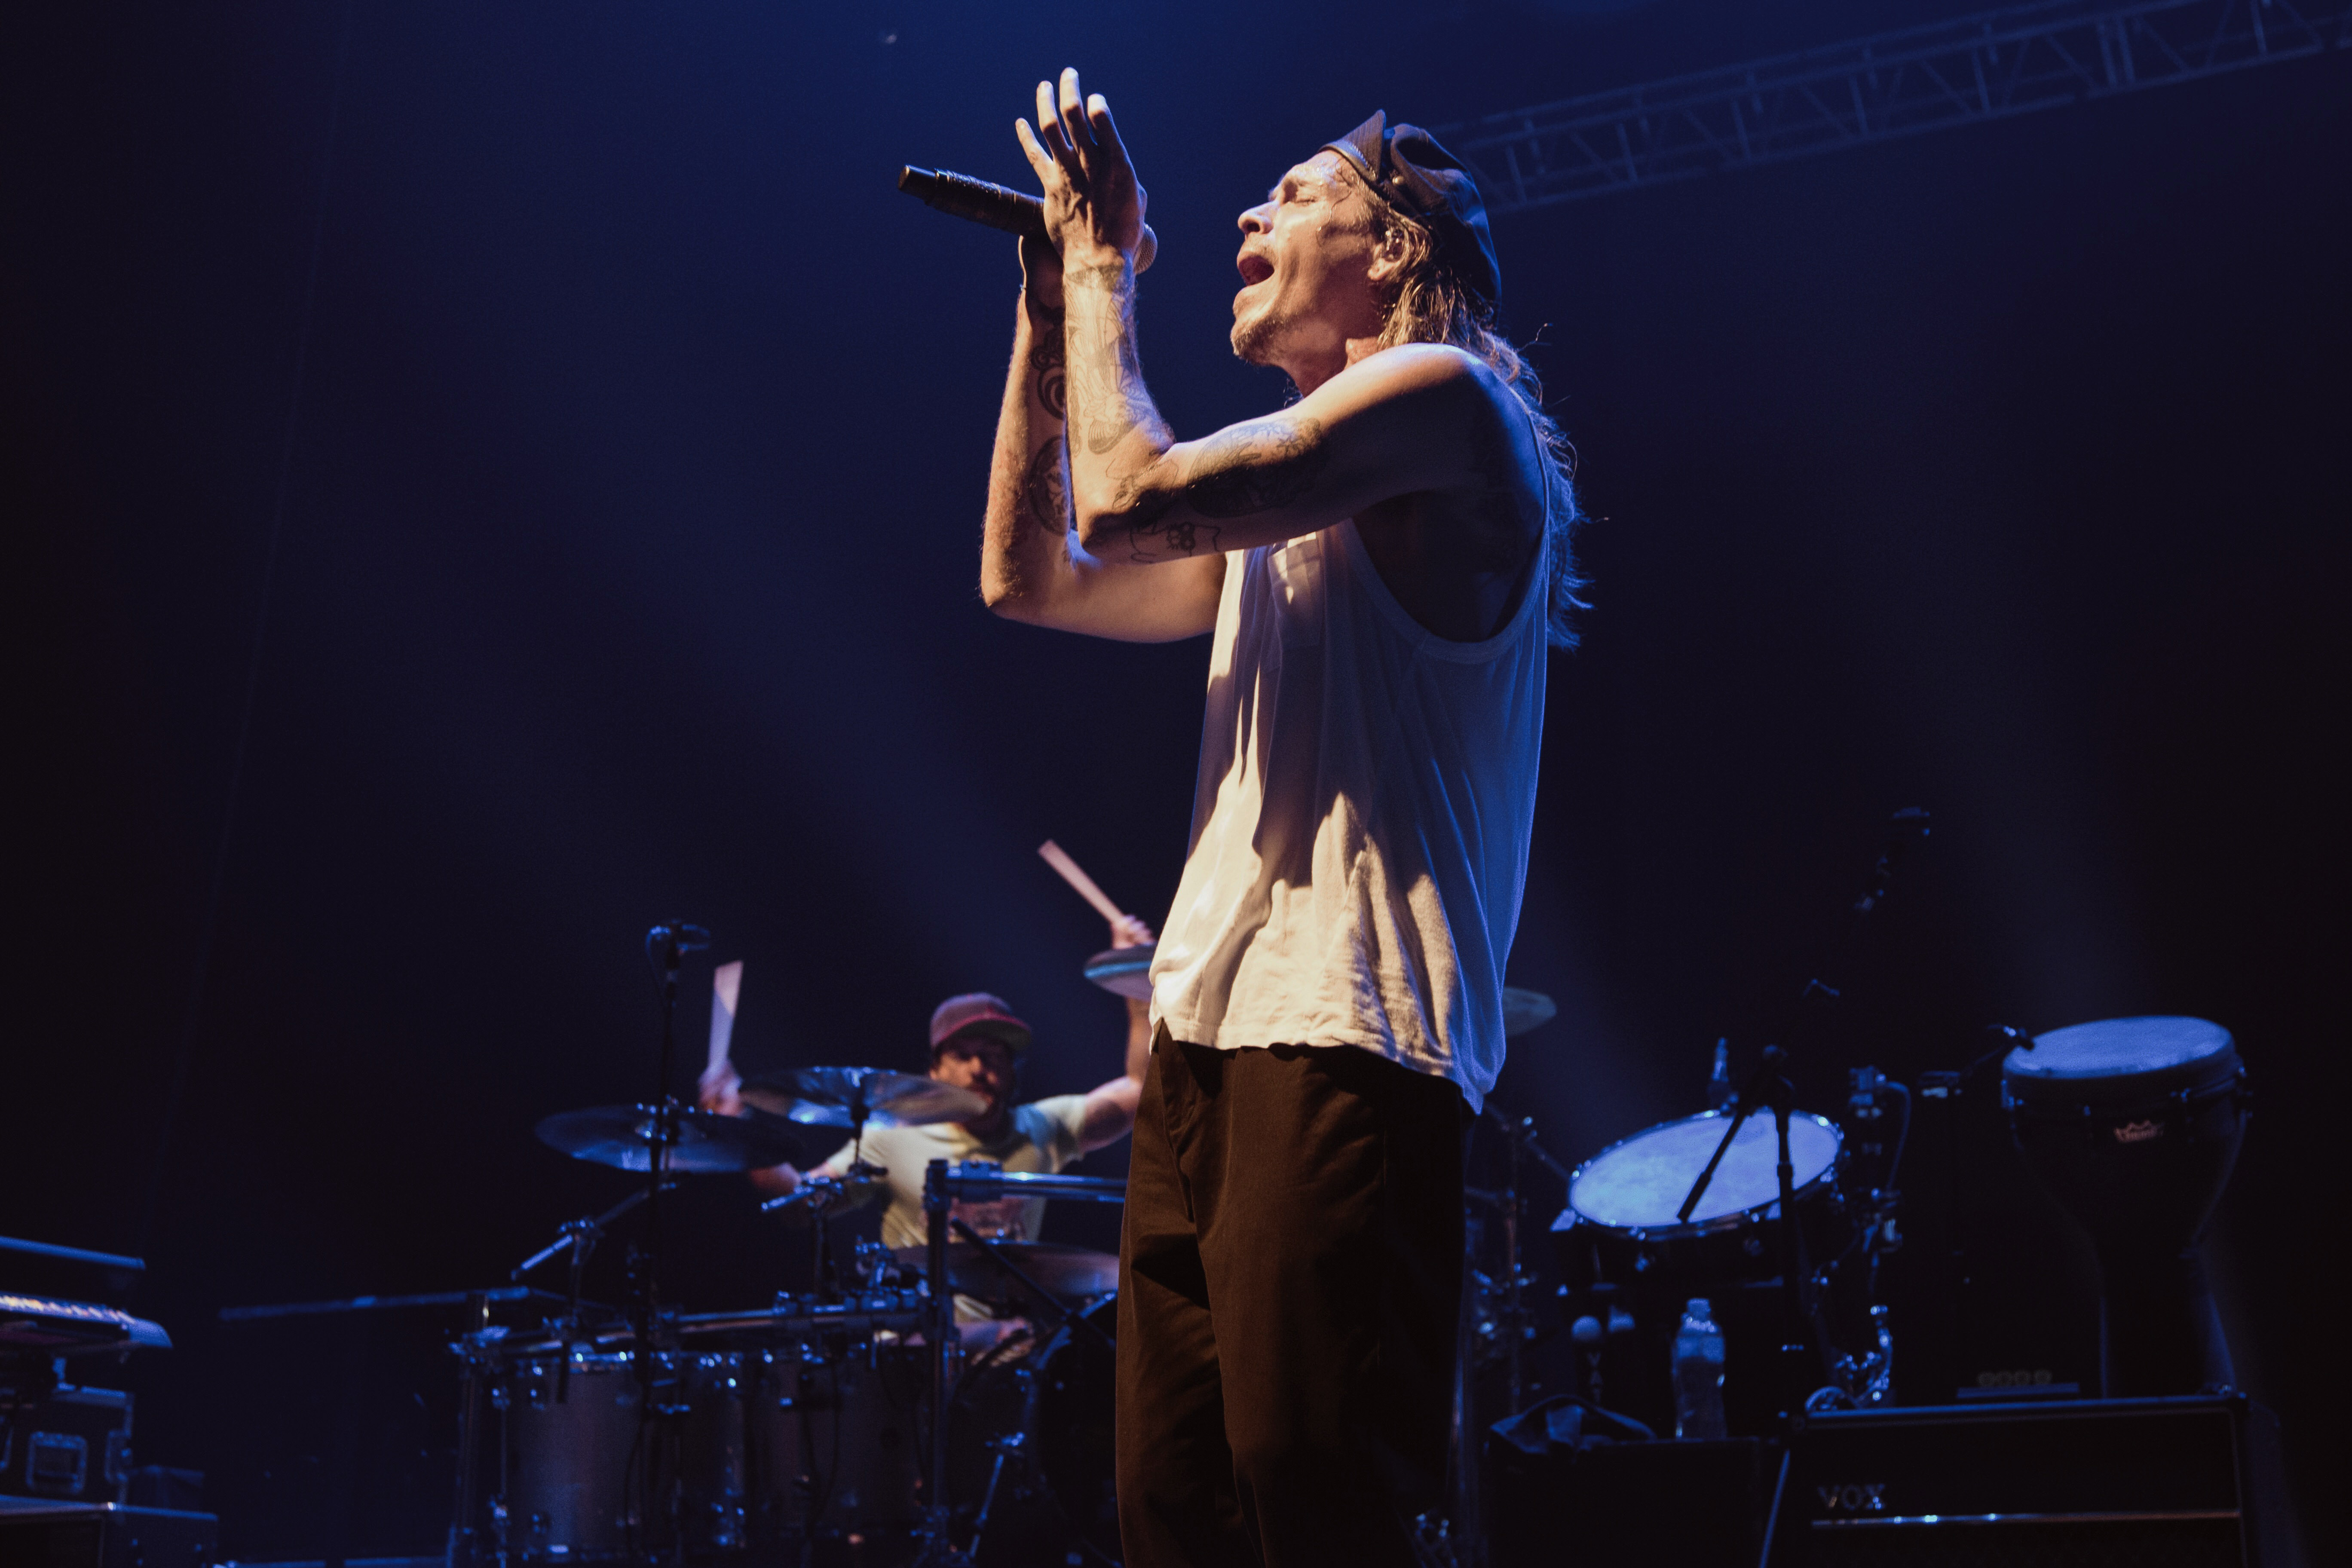 Review: Incubus, Morning View - Slant Magazine